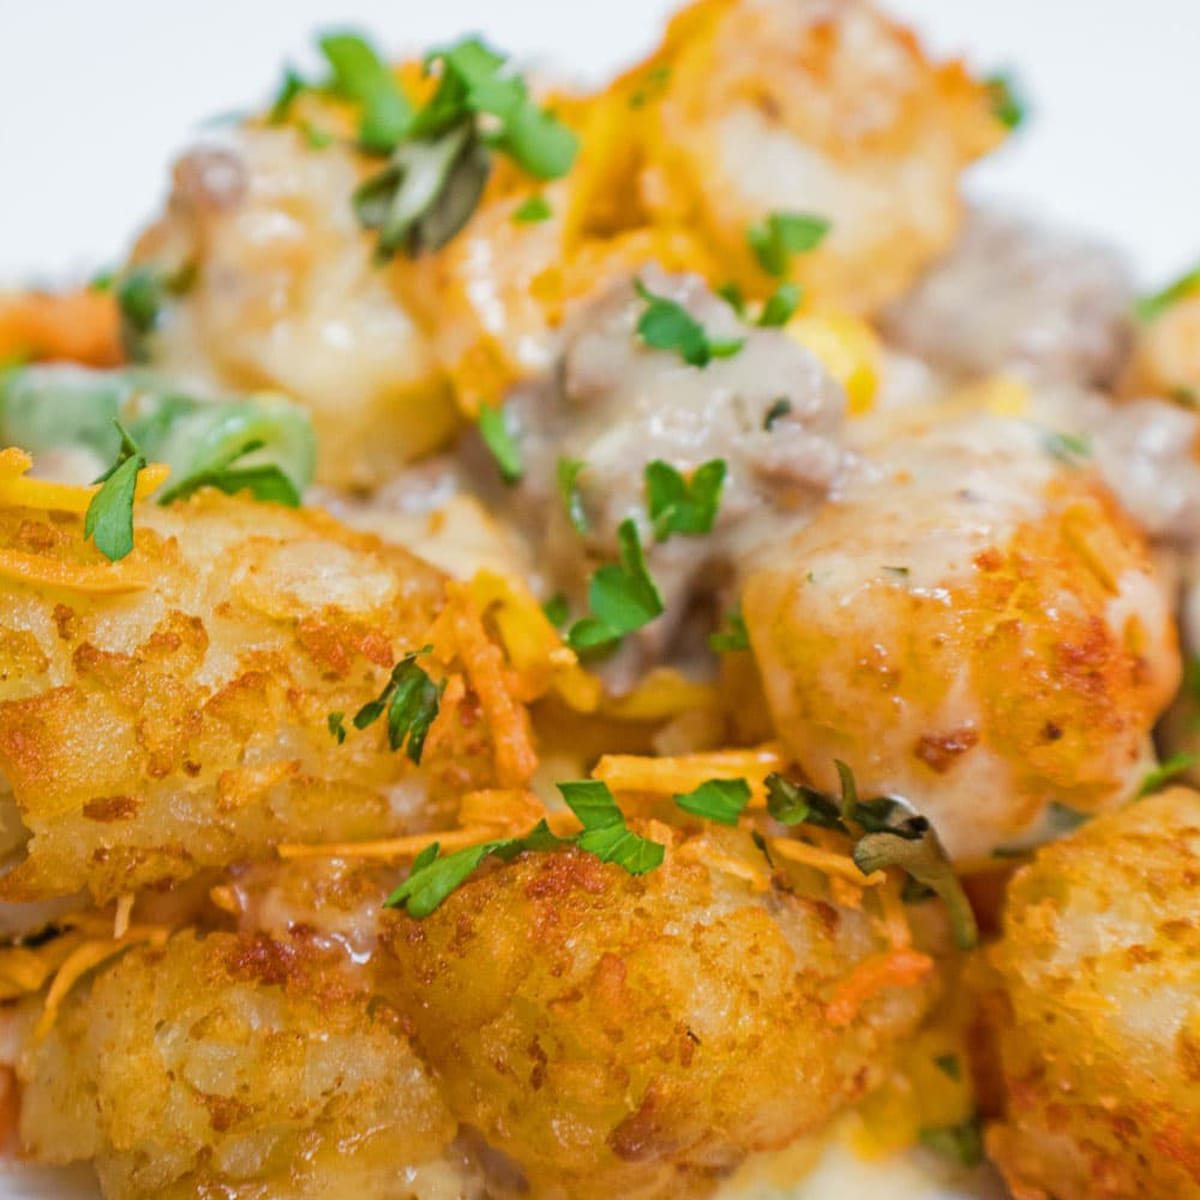 Tater tot casserole close up with chopped parsley on top.